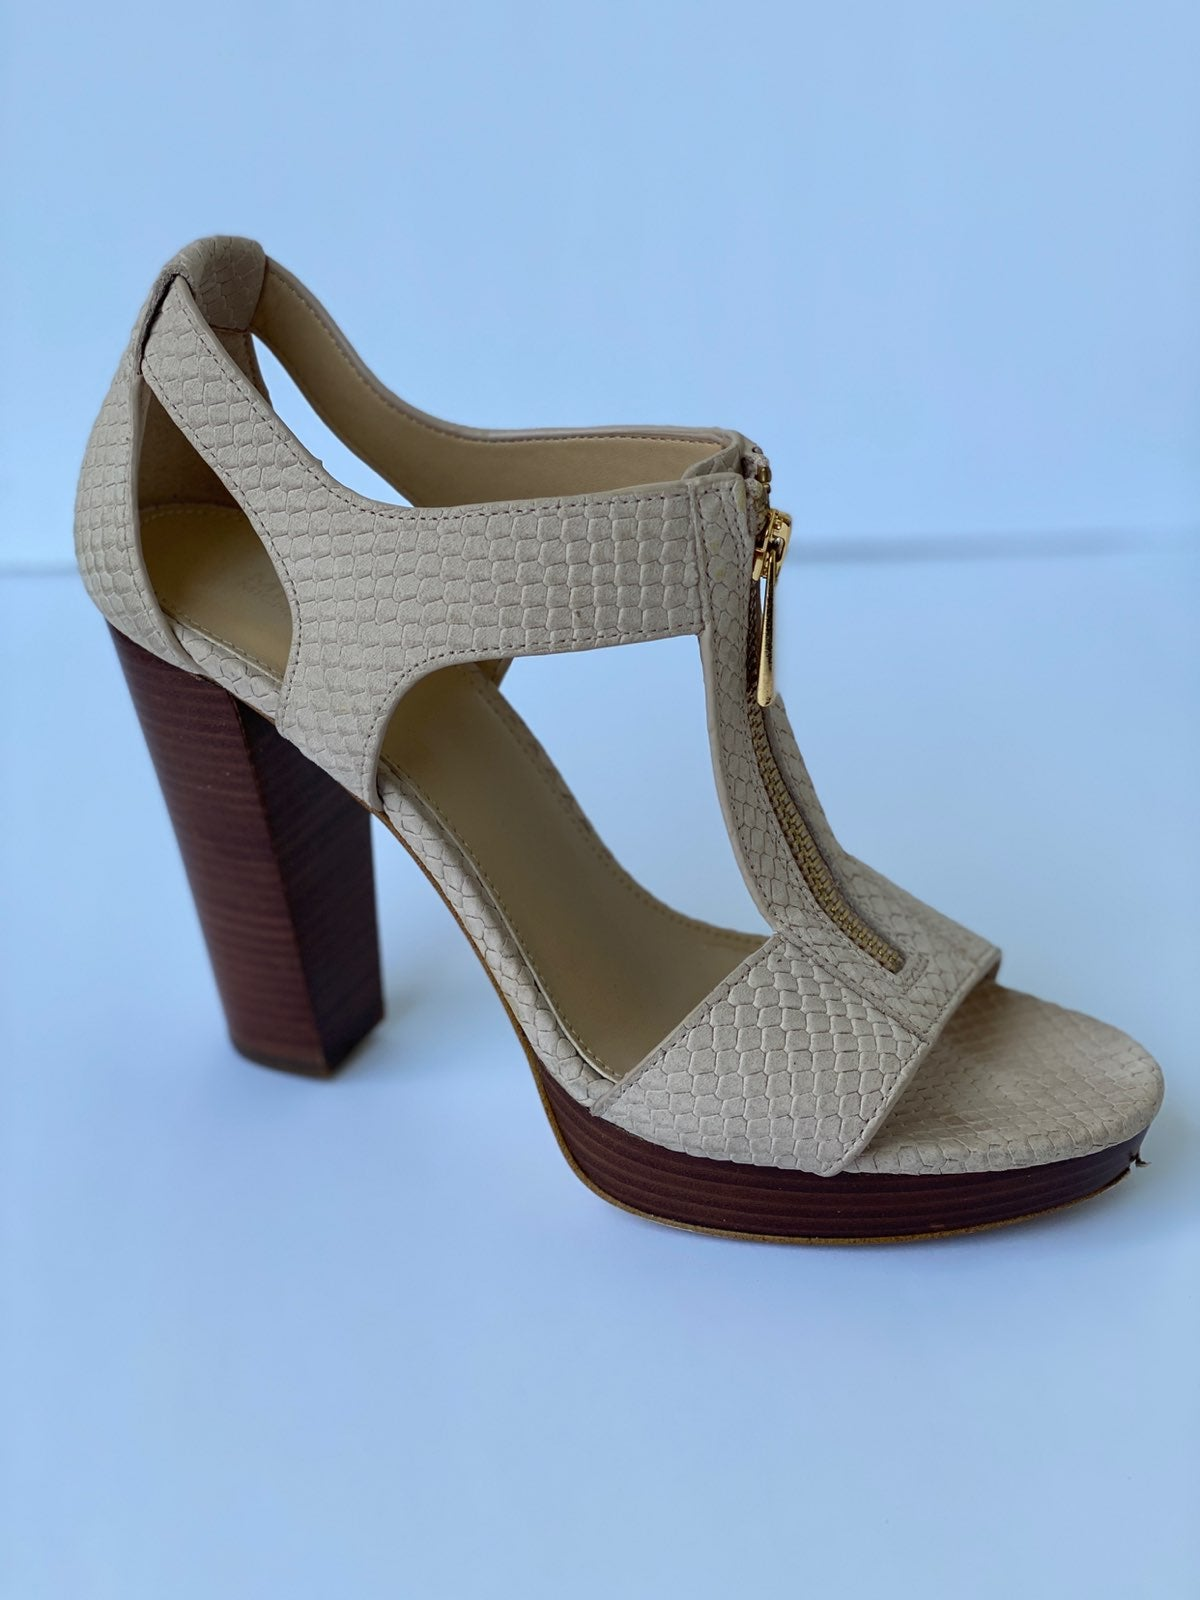 Michael Kors Heels Shoes 7